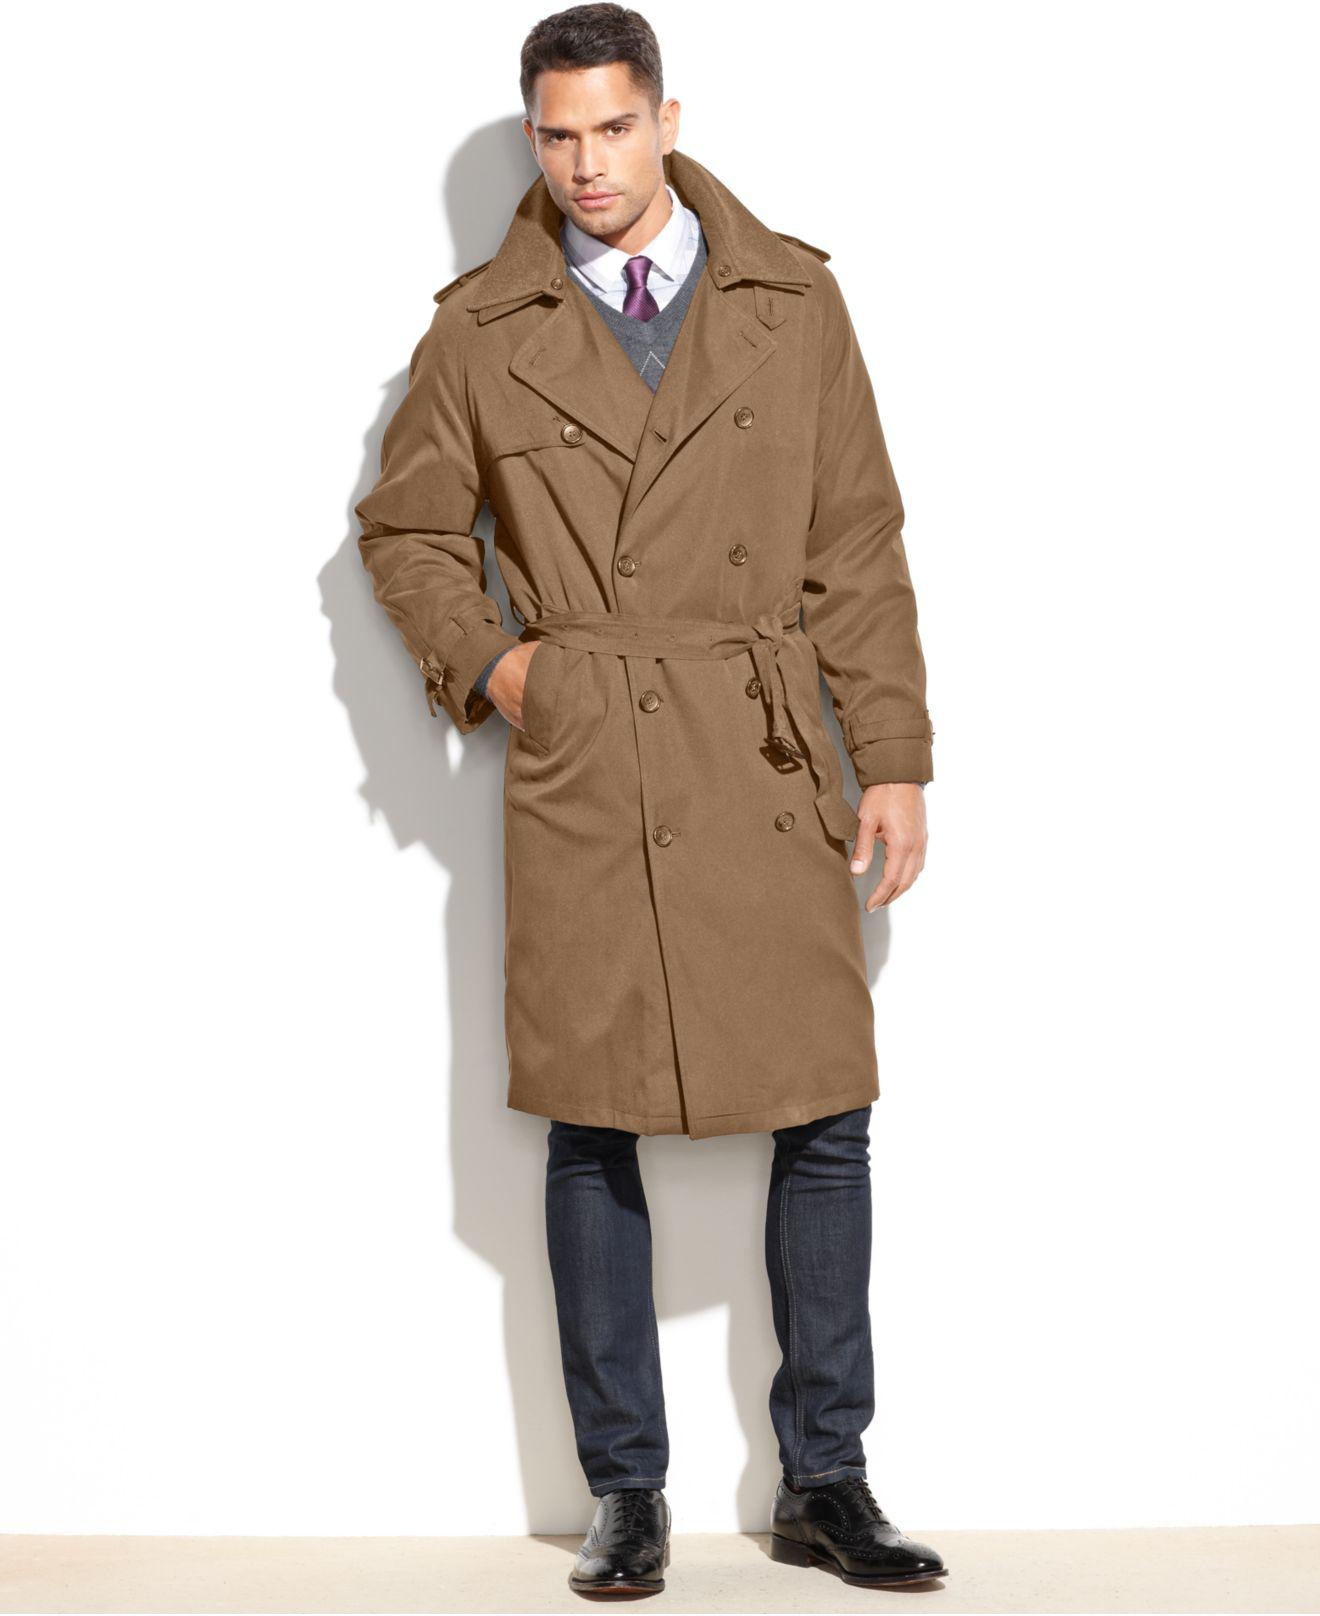 London Fog Coat Iconic Belted Trench Raincoat In Natural